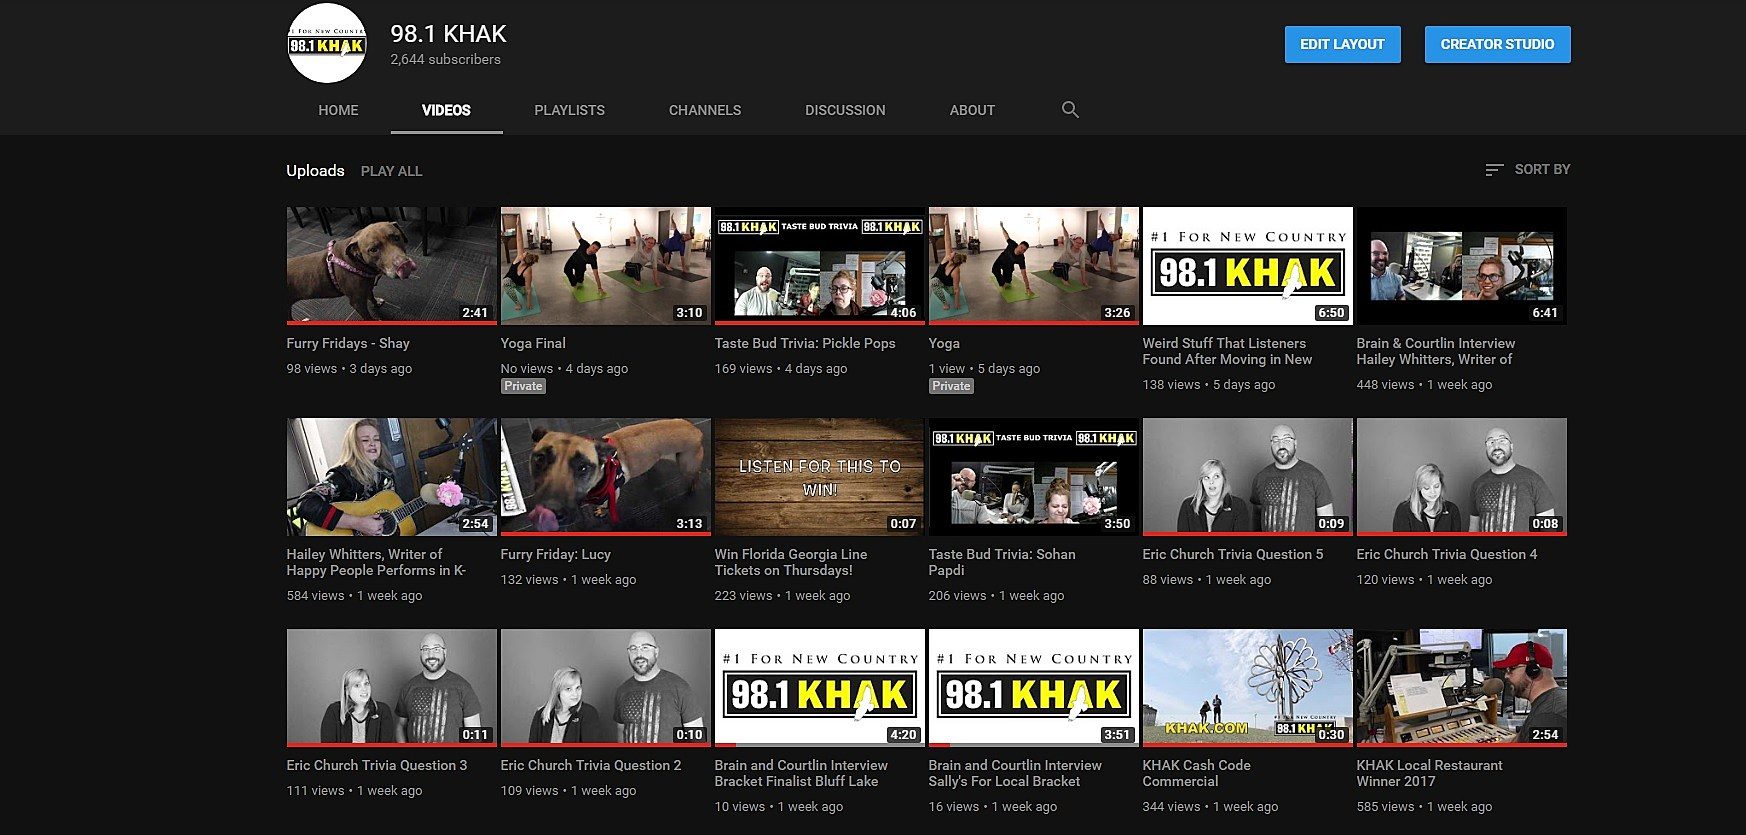 YouTube via KHAK